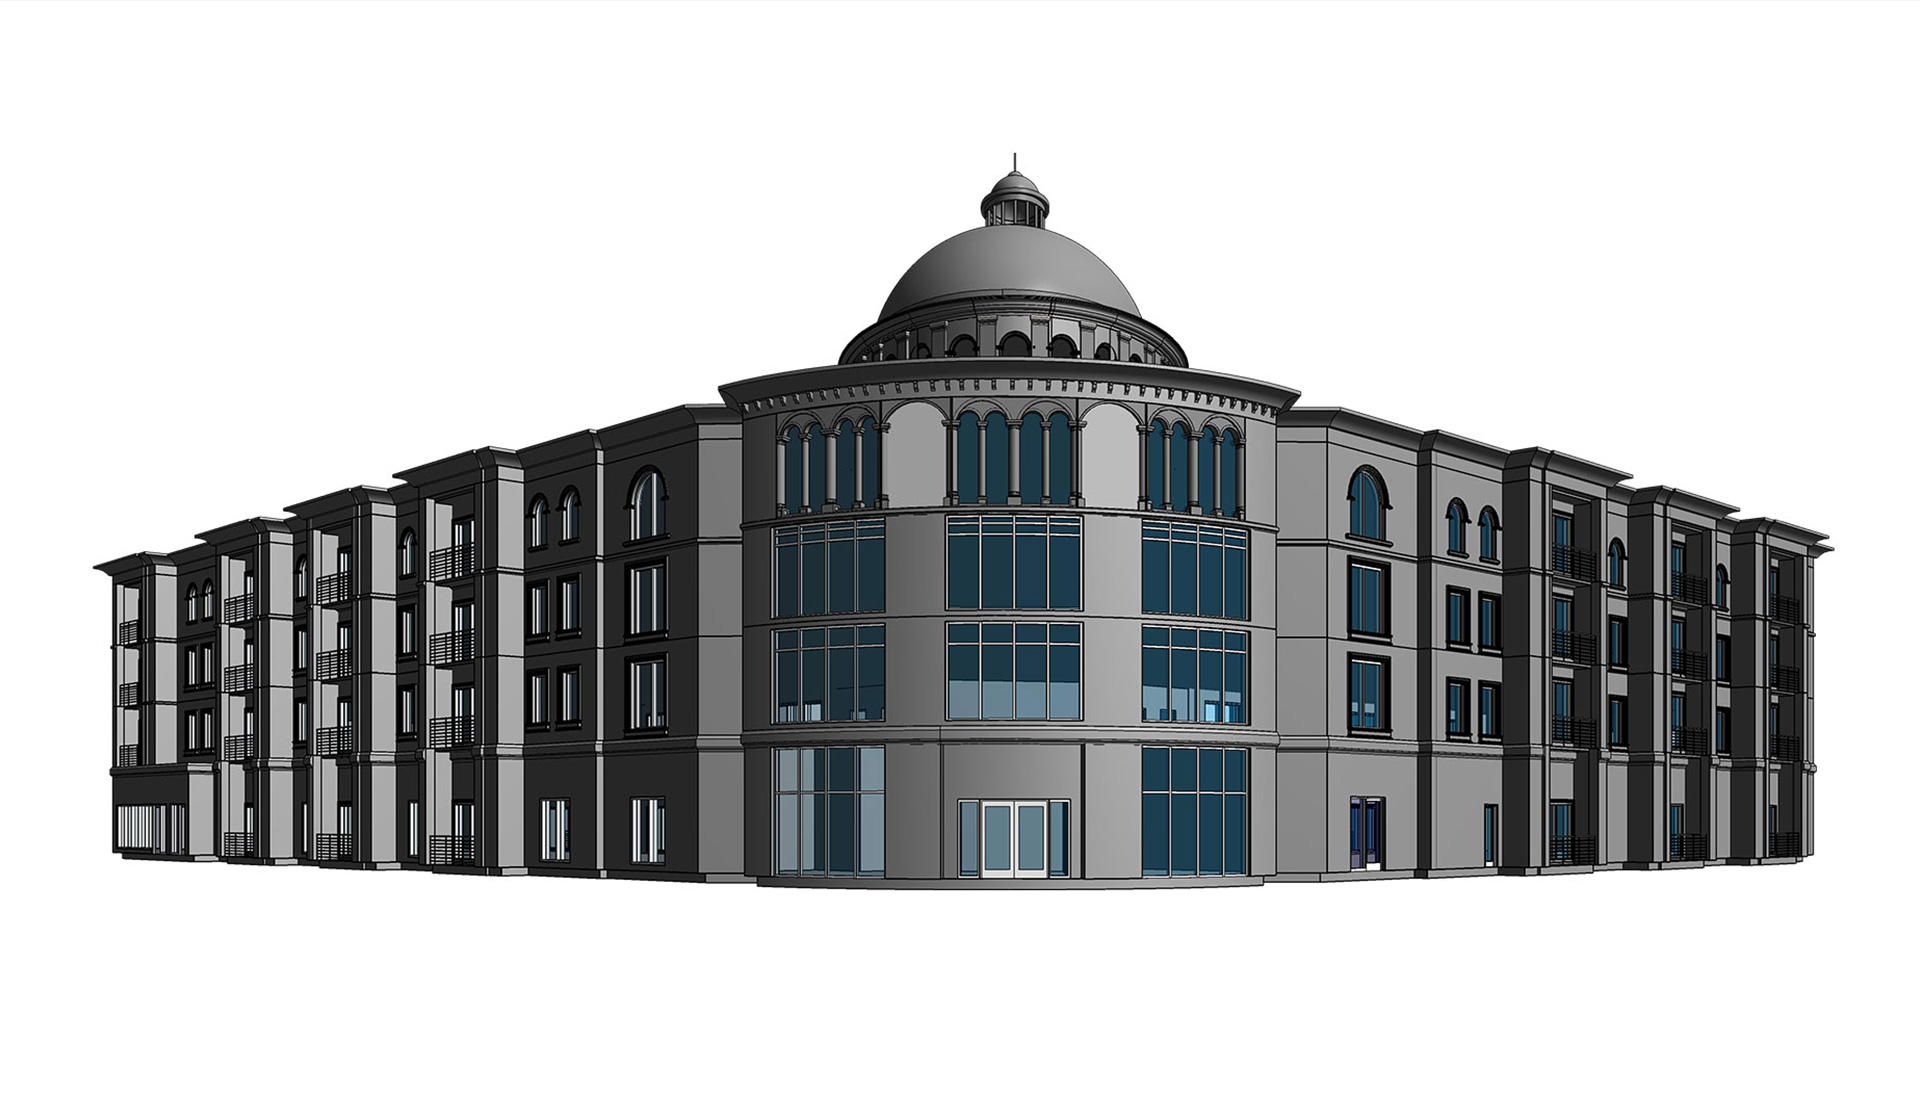 3D-architectural-model-of-hotel-building-project_Revit-Modeling-by-United-BIM